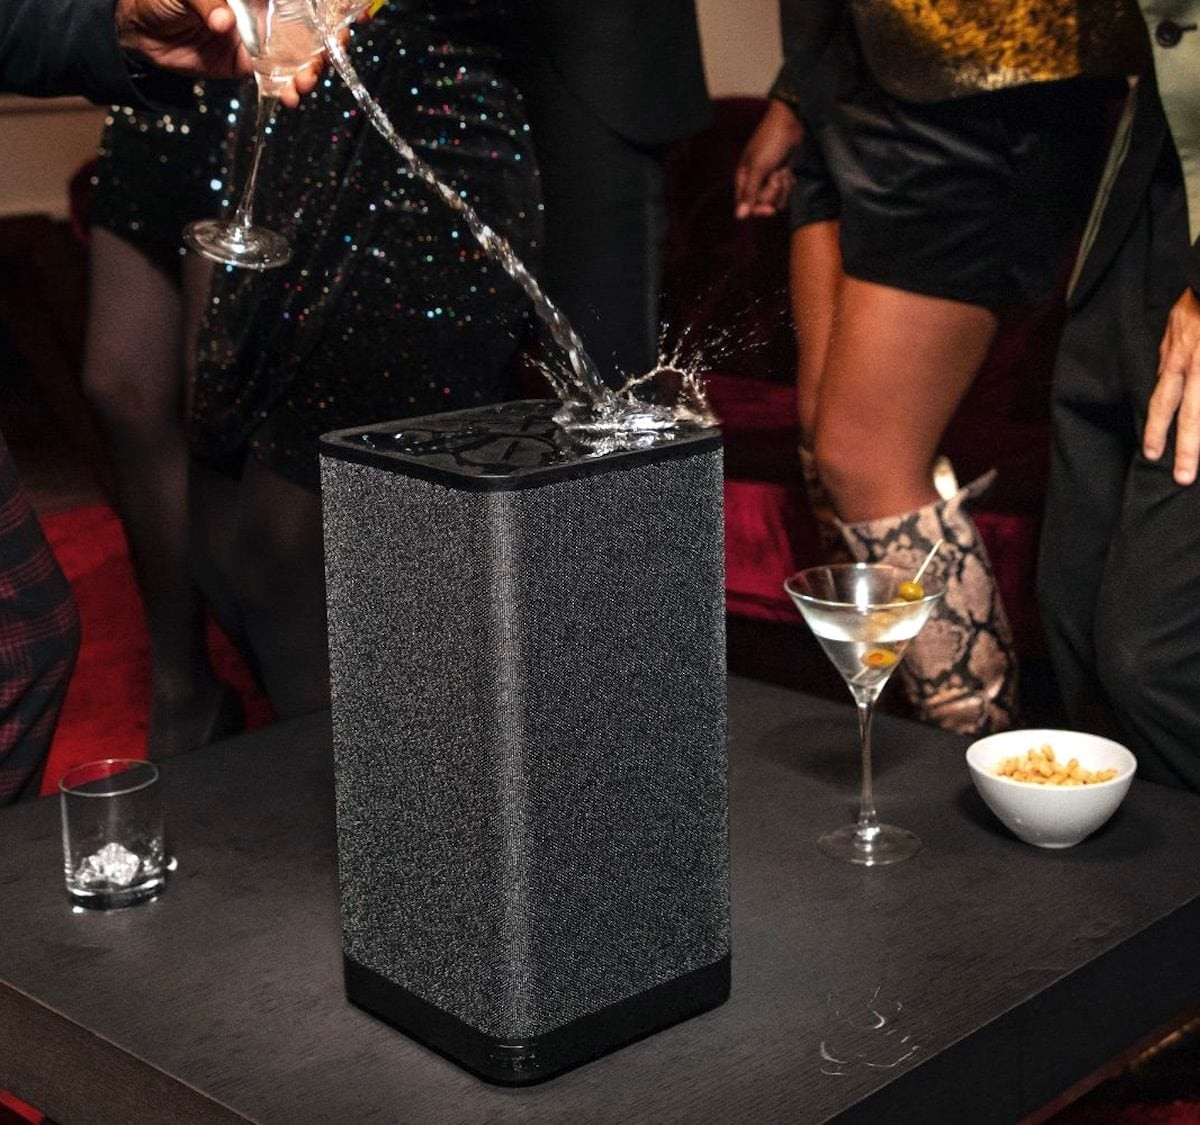 Ultimate Ears HYPERBOOM 360º Speaker uses adaptive EQ tech to enhance your parties